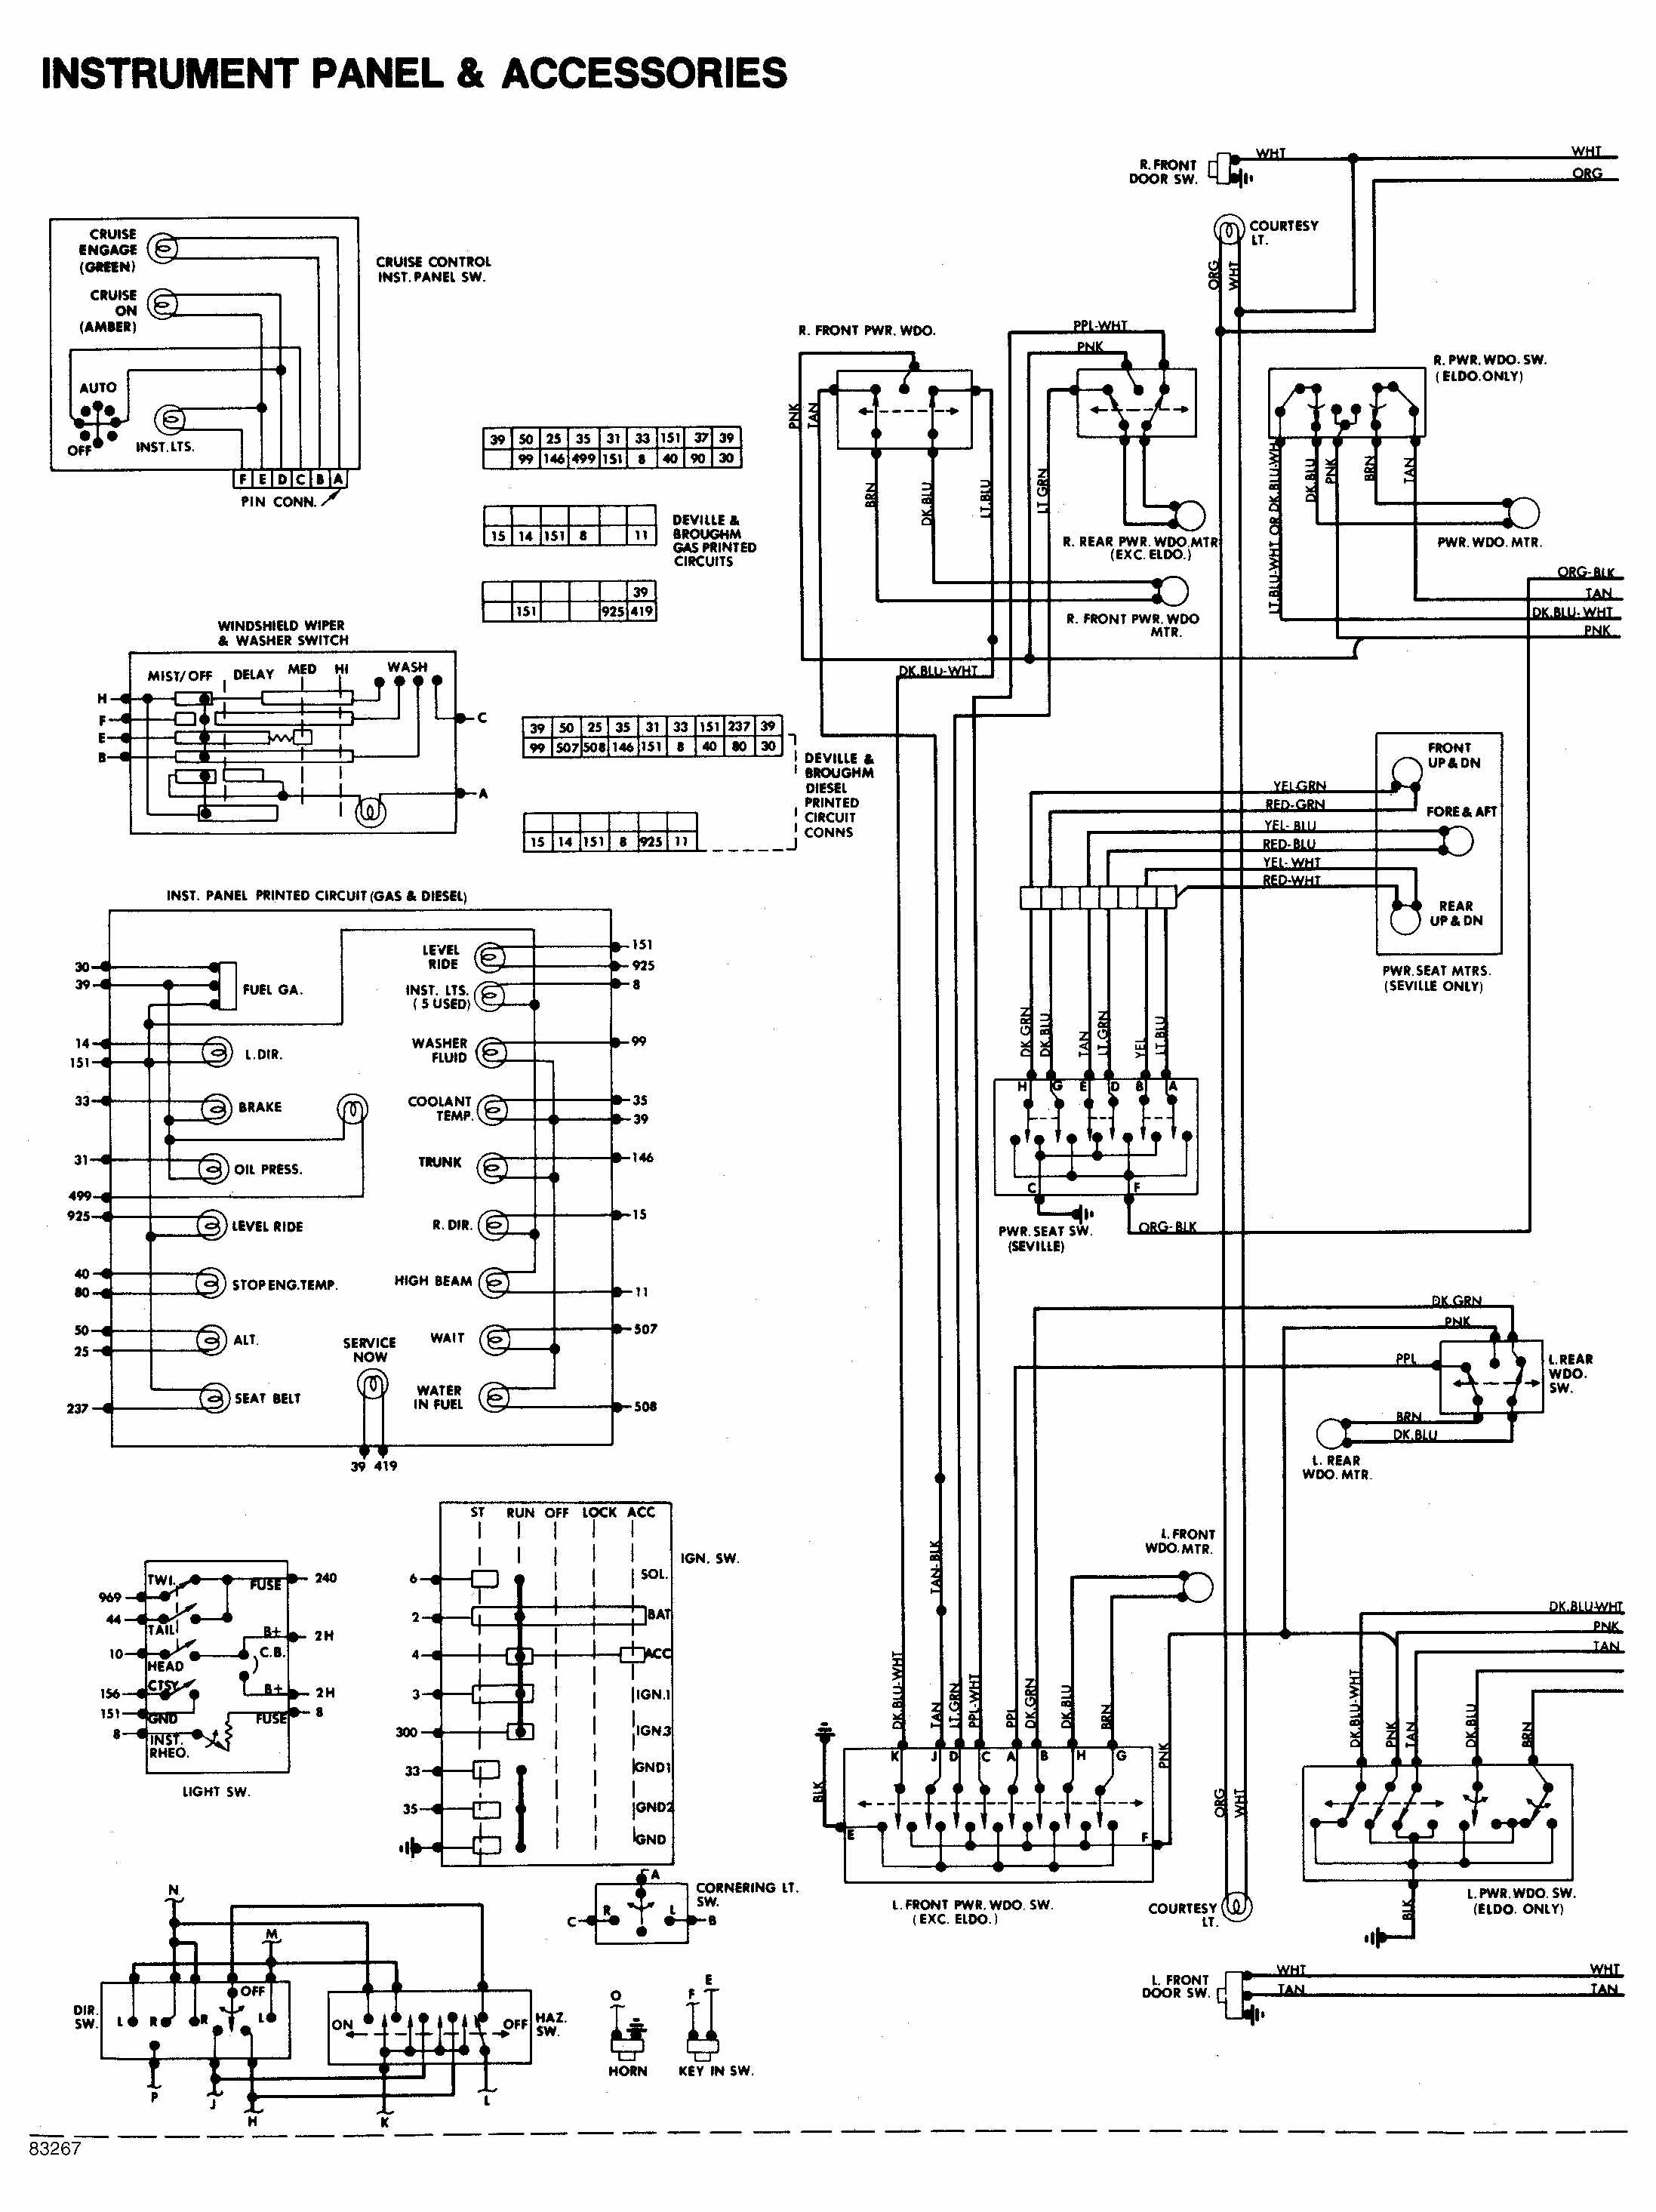 67 chevy camaro fuse box diagram free download data wiring diagram rh 3 11 schuerer housekeeping de